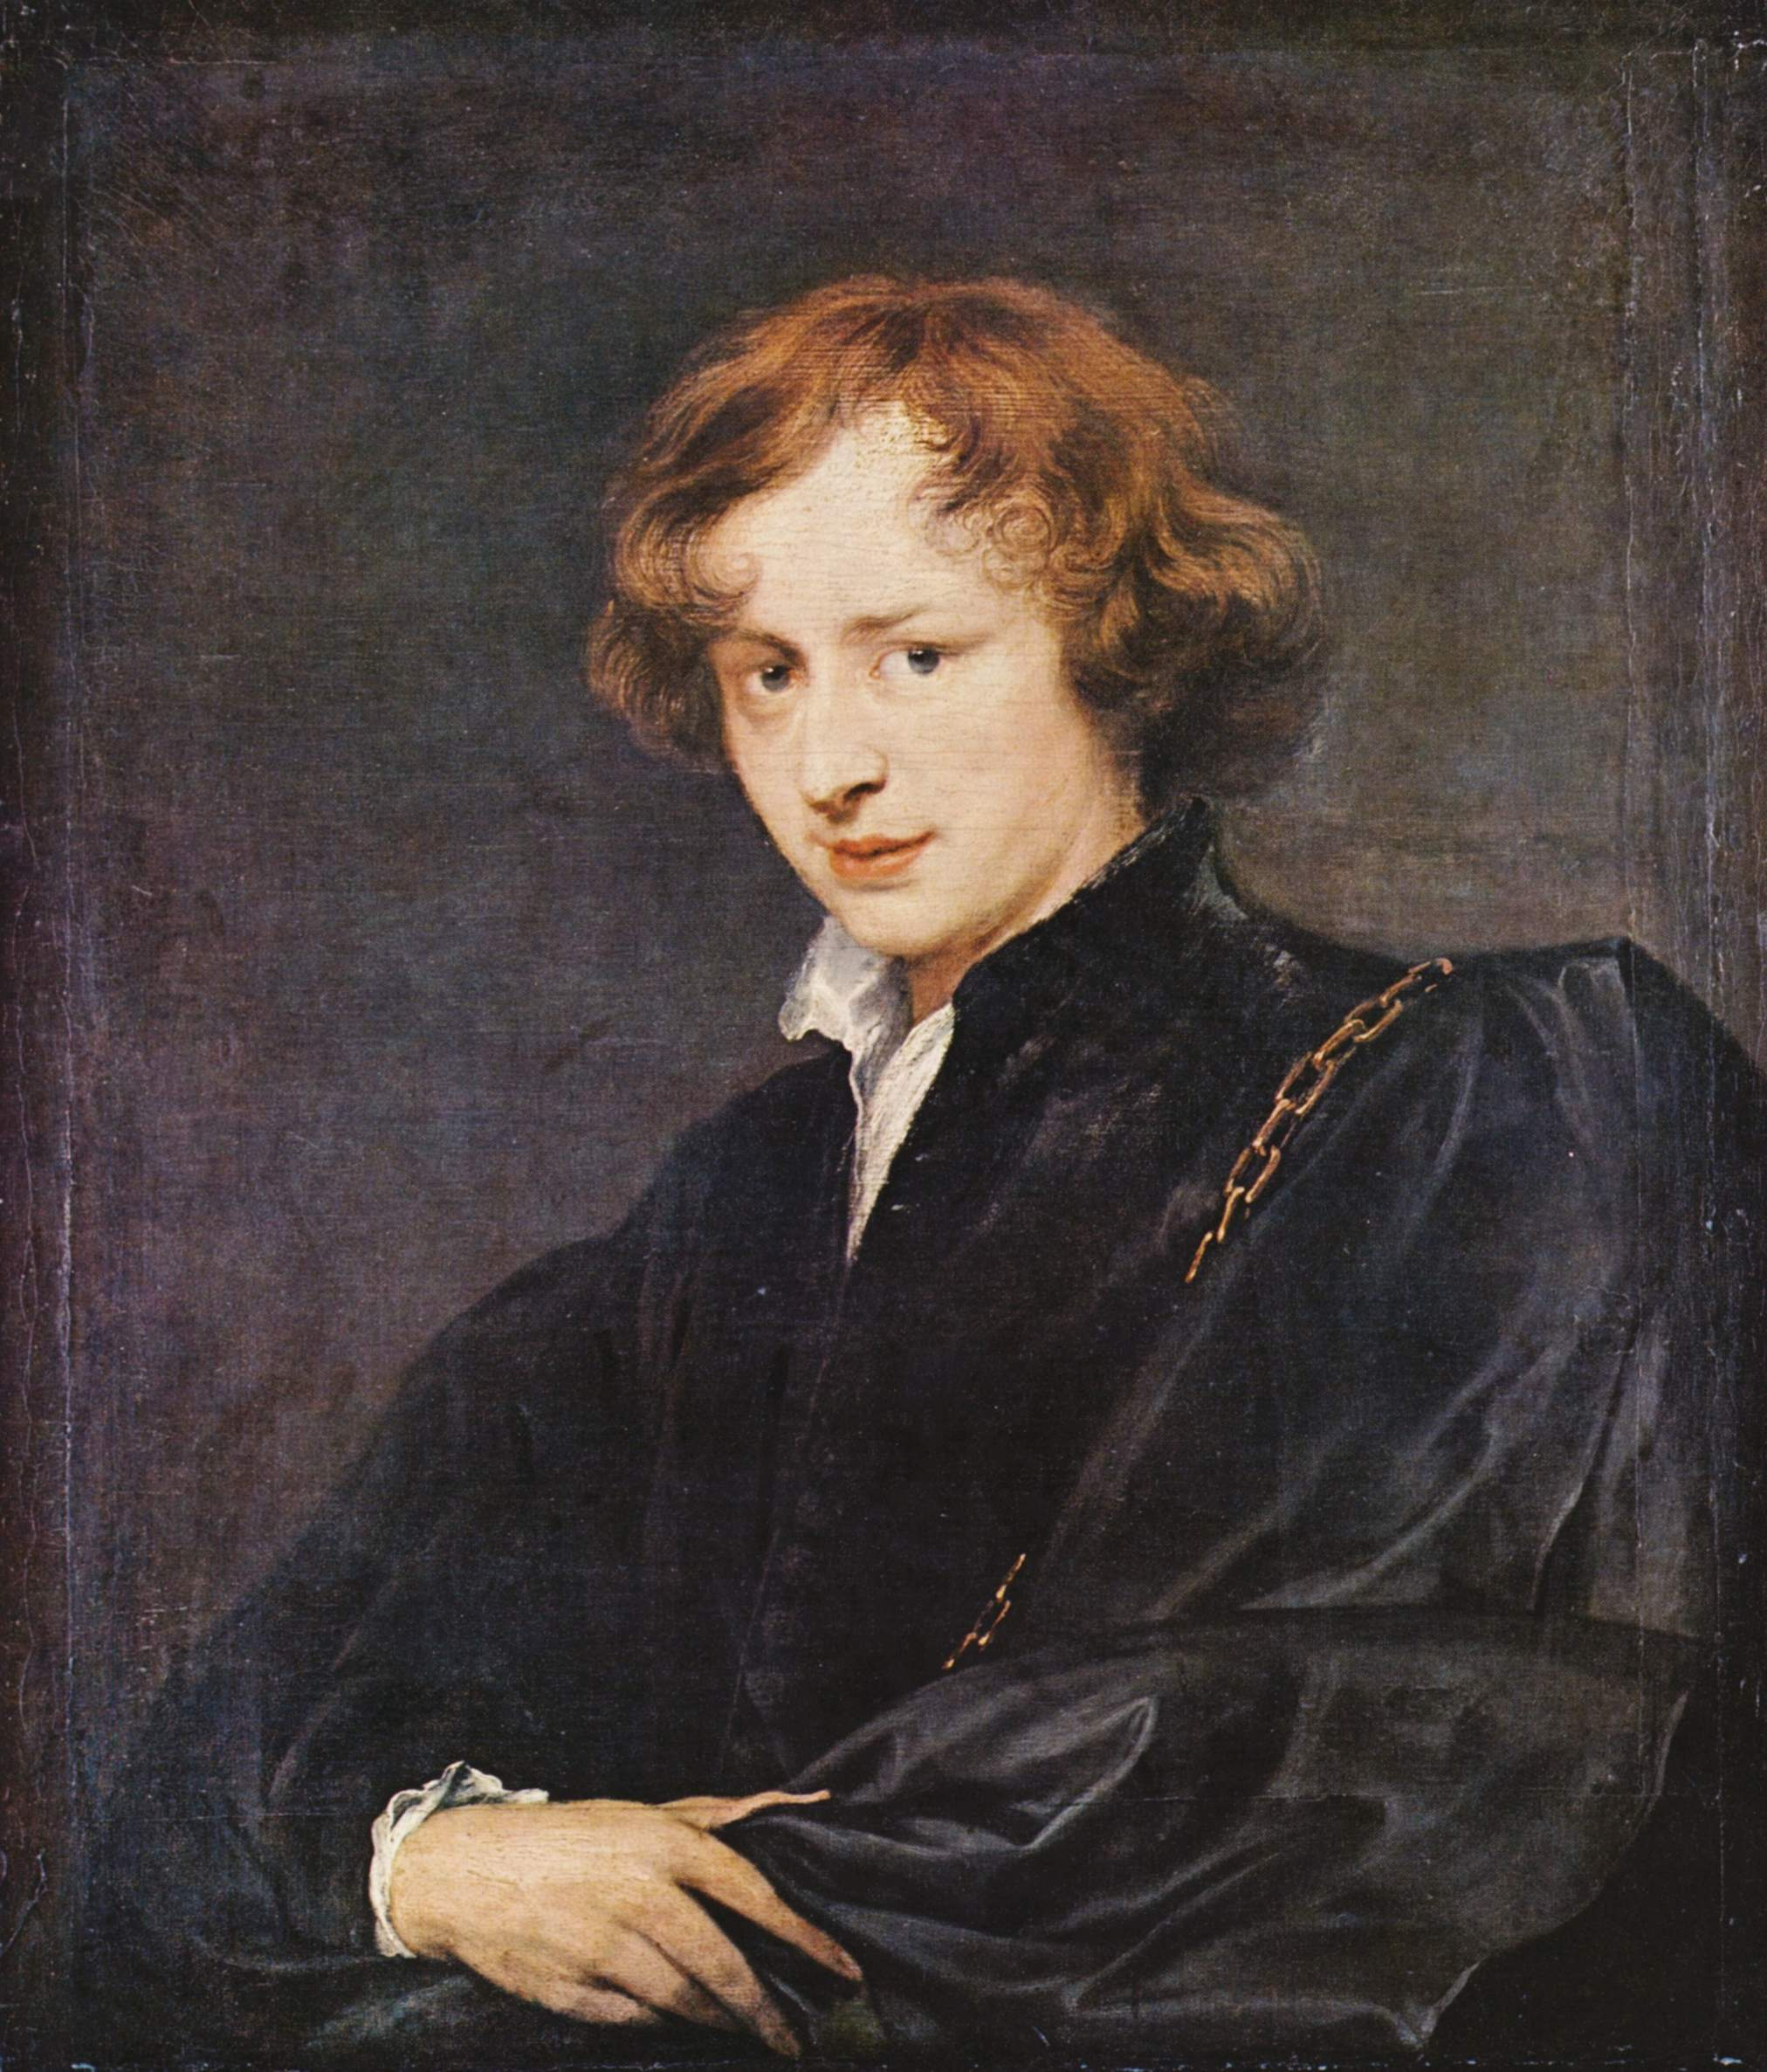 http://upload.wikimedia.org/wikipedia/commons/b/bc/Anthonis_van_Dyck_050.jpg